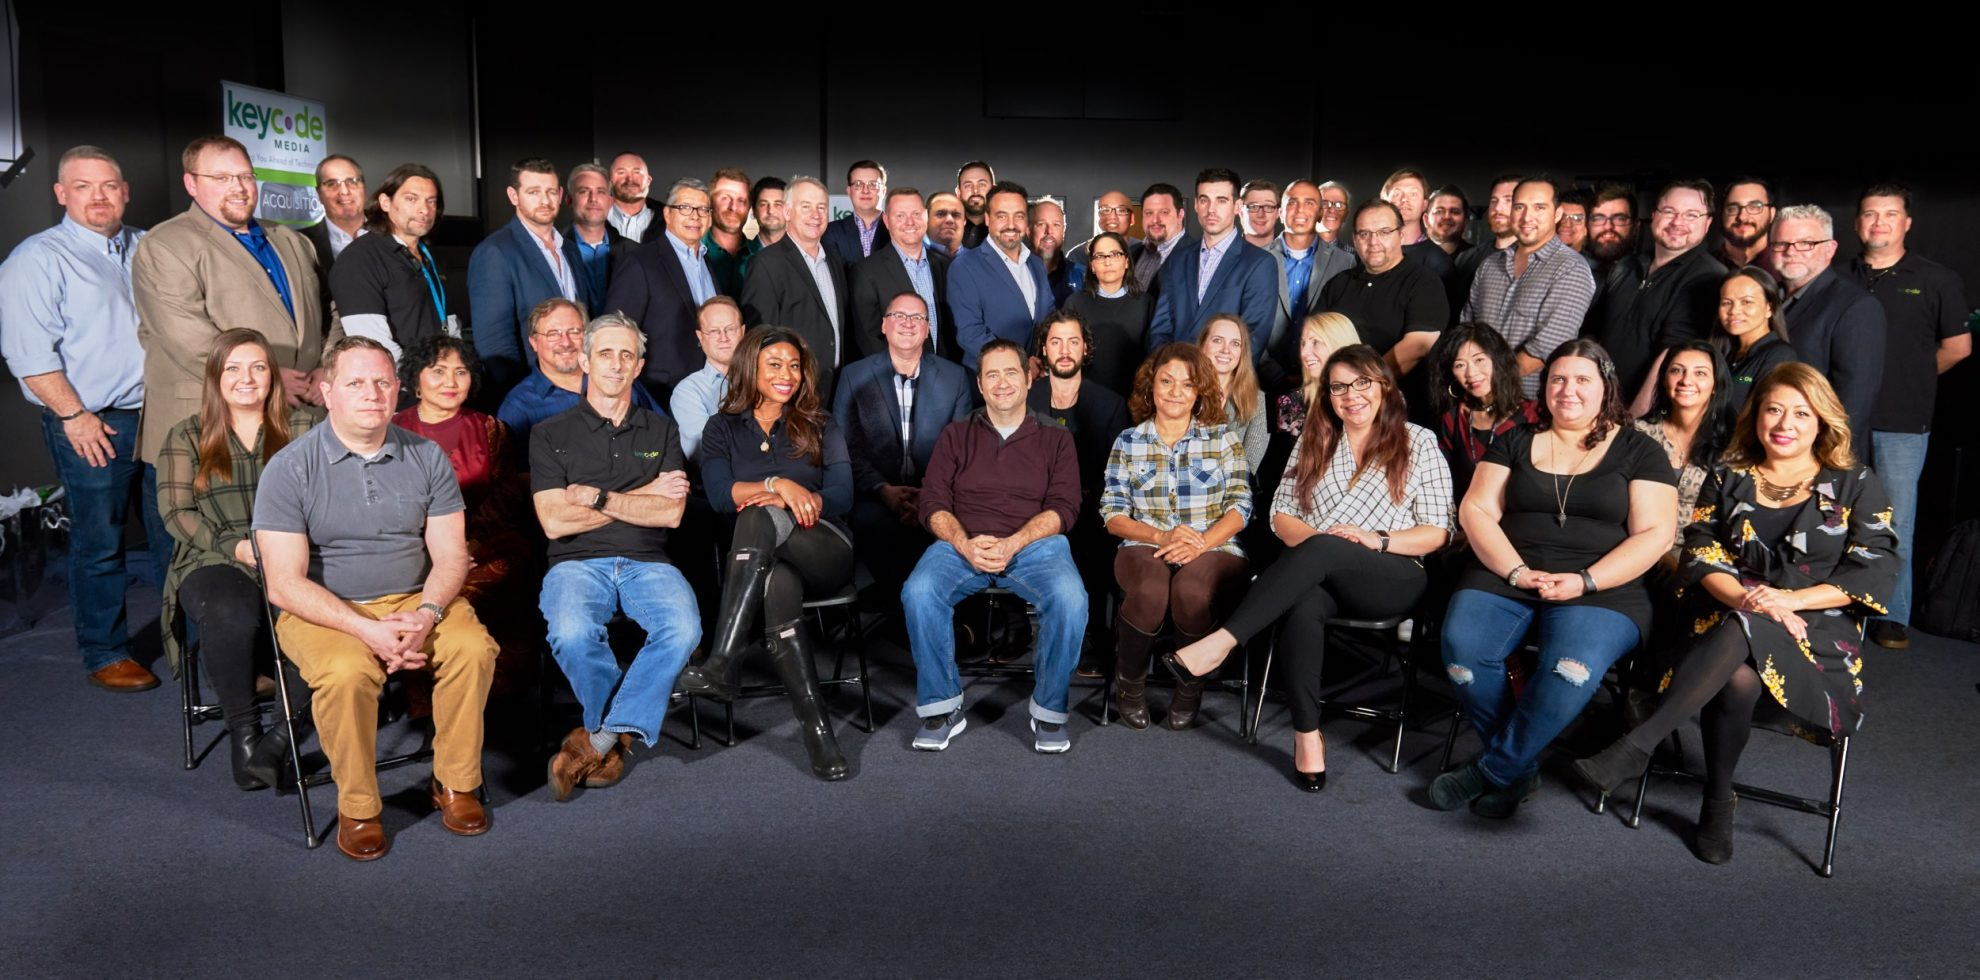 Key Code Media company photo 2018